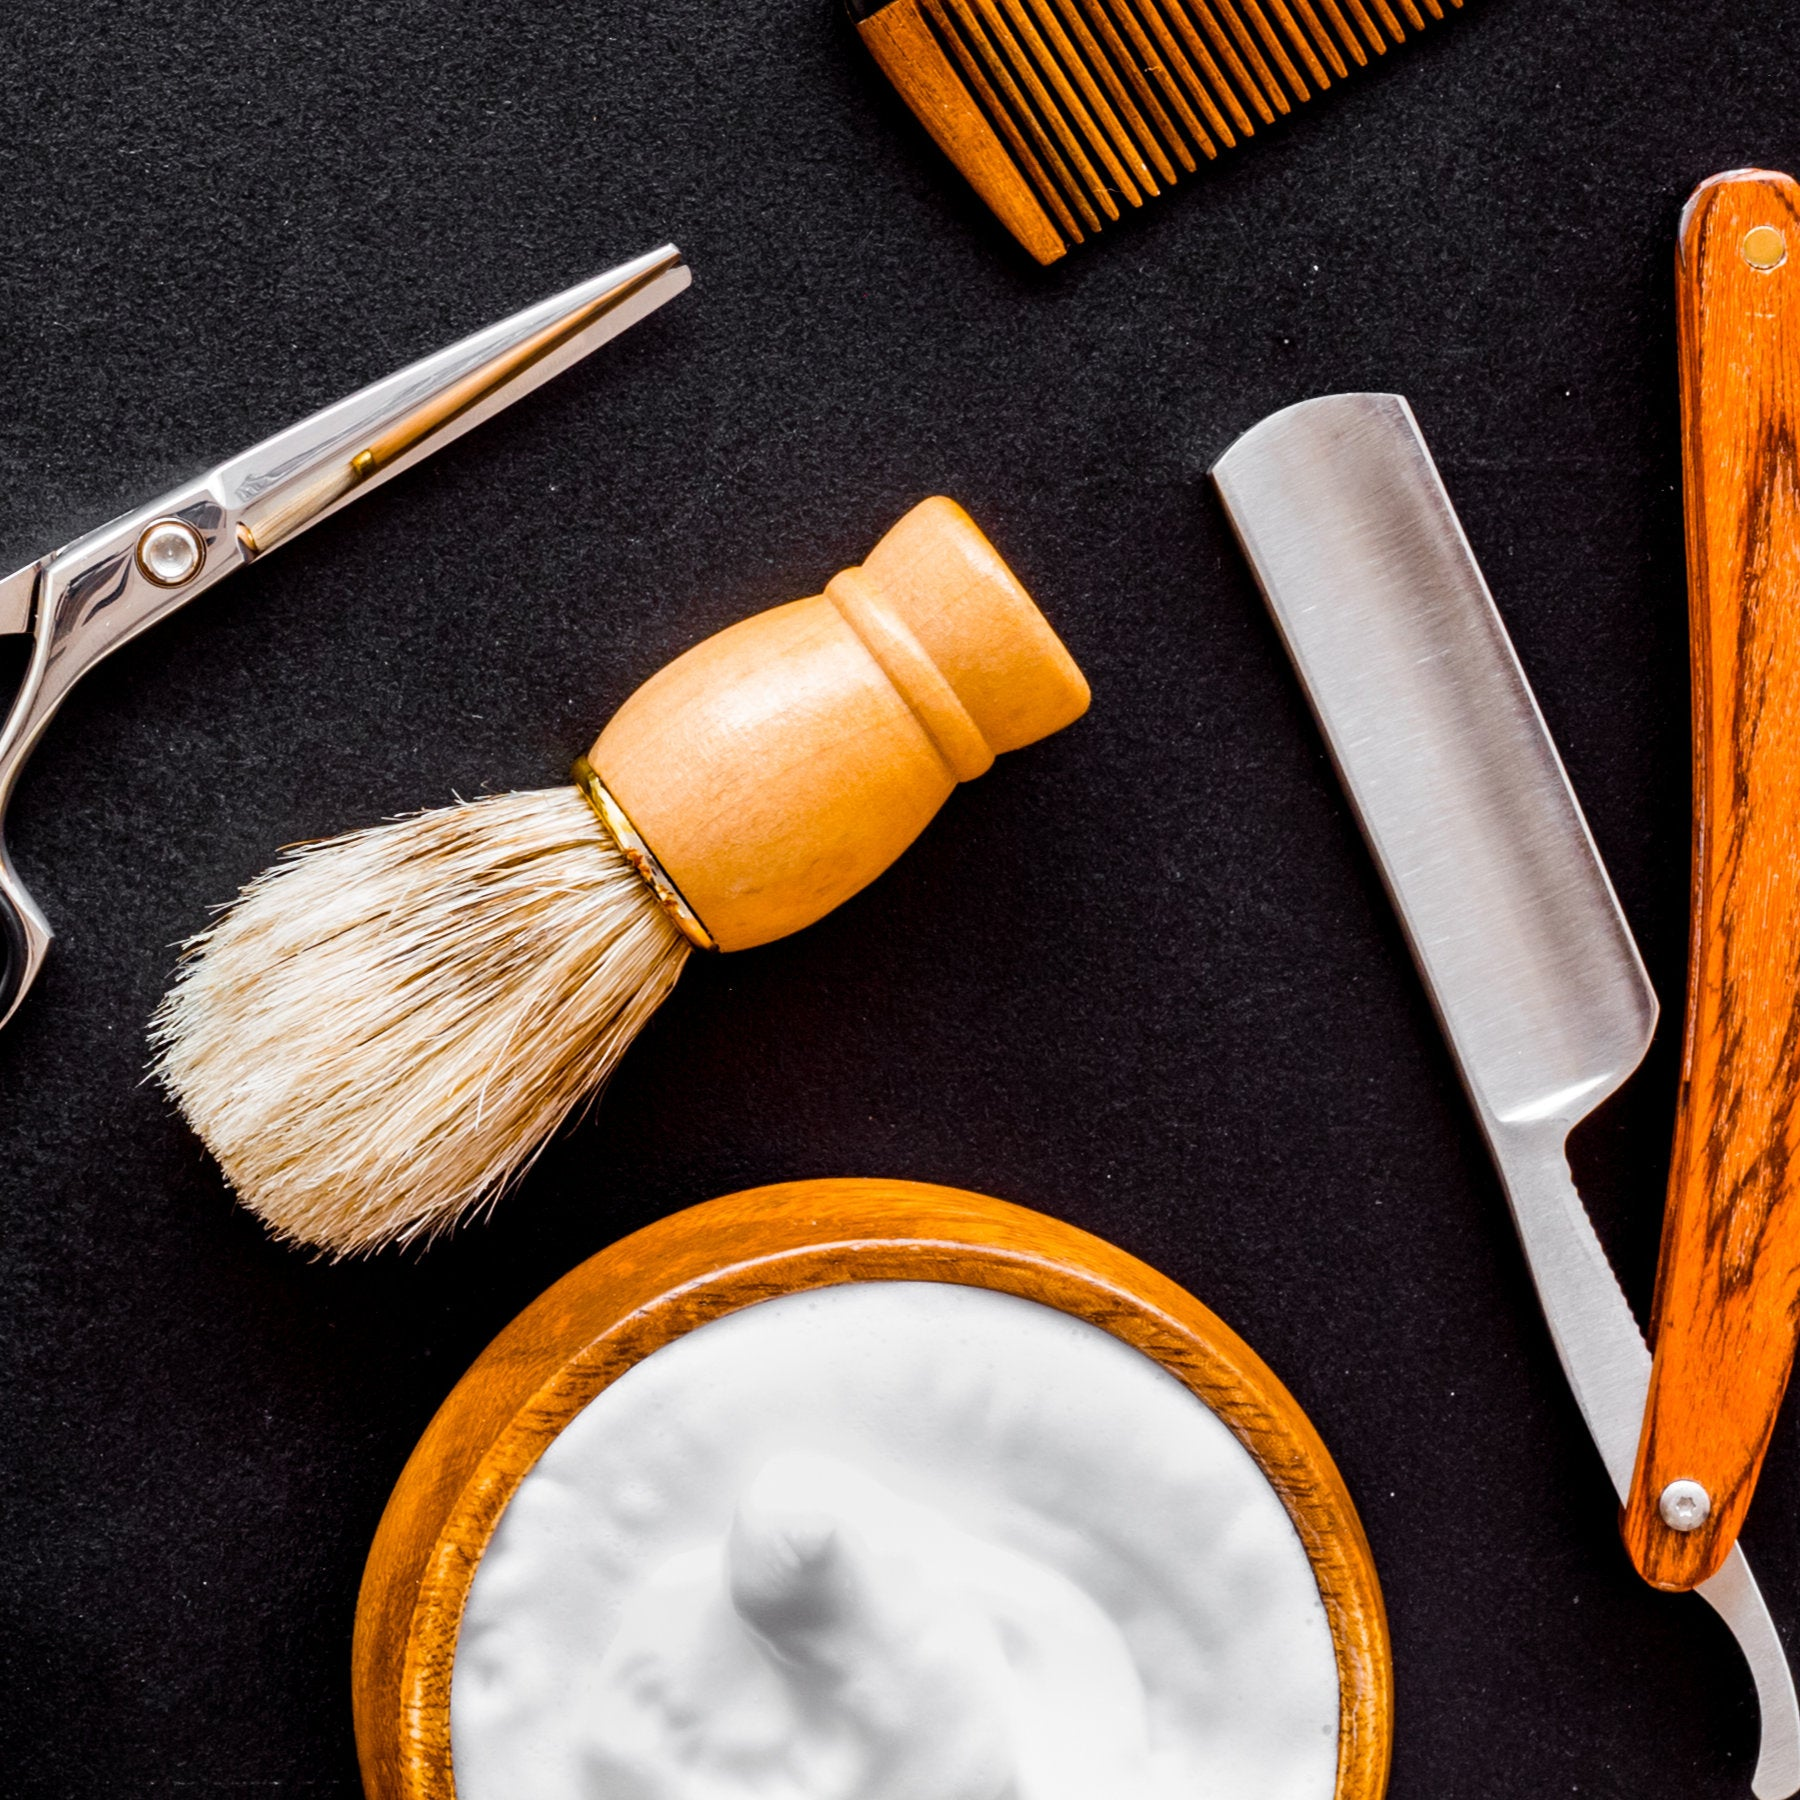 Shop Grooming Gear by Category at Swiss Knife Shop